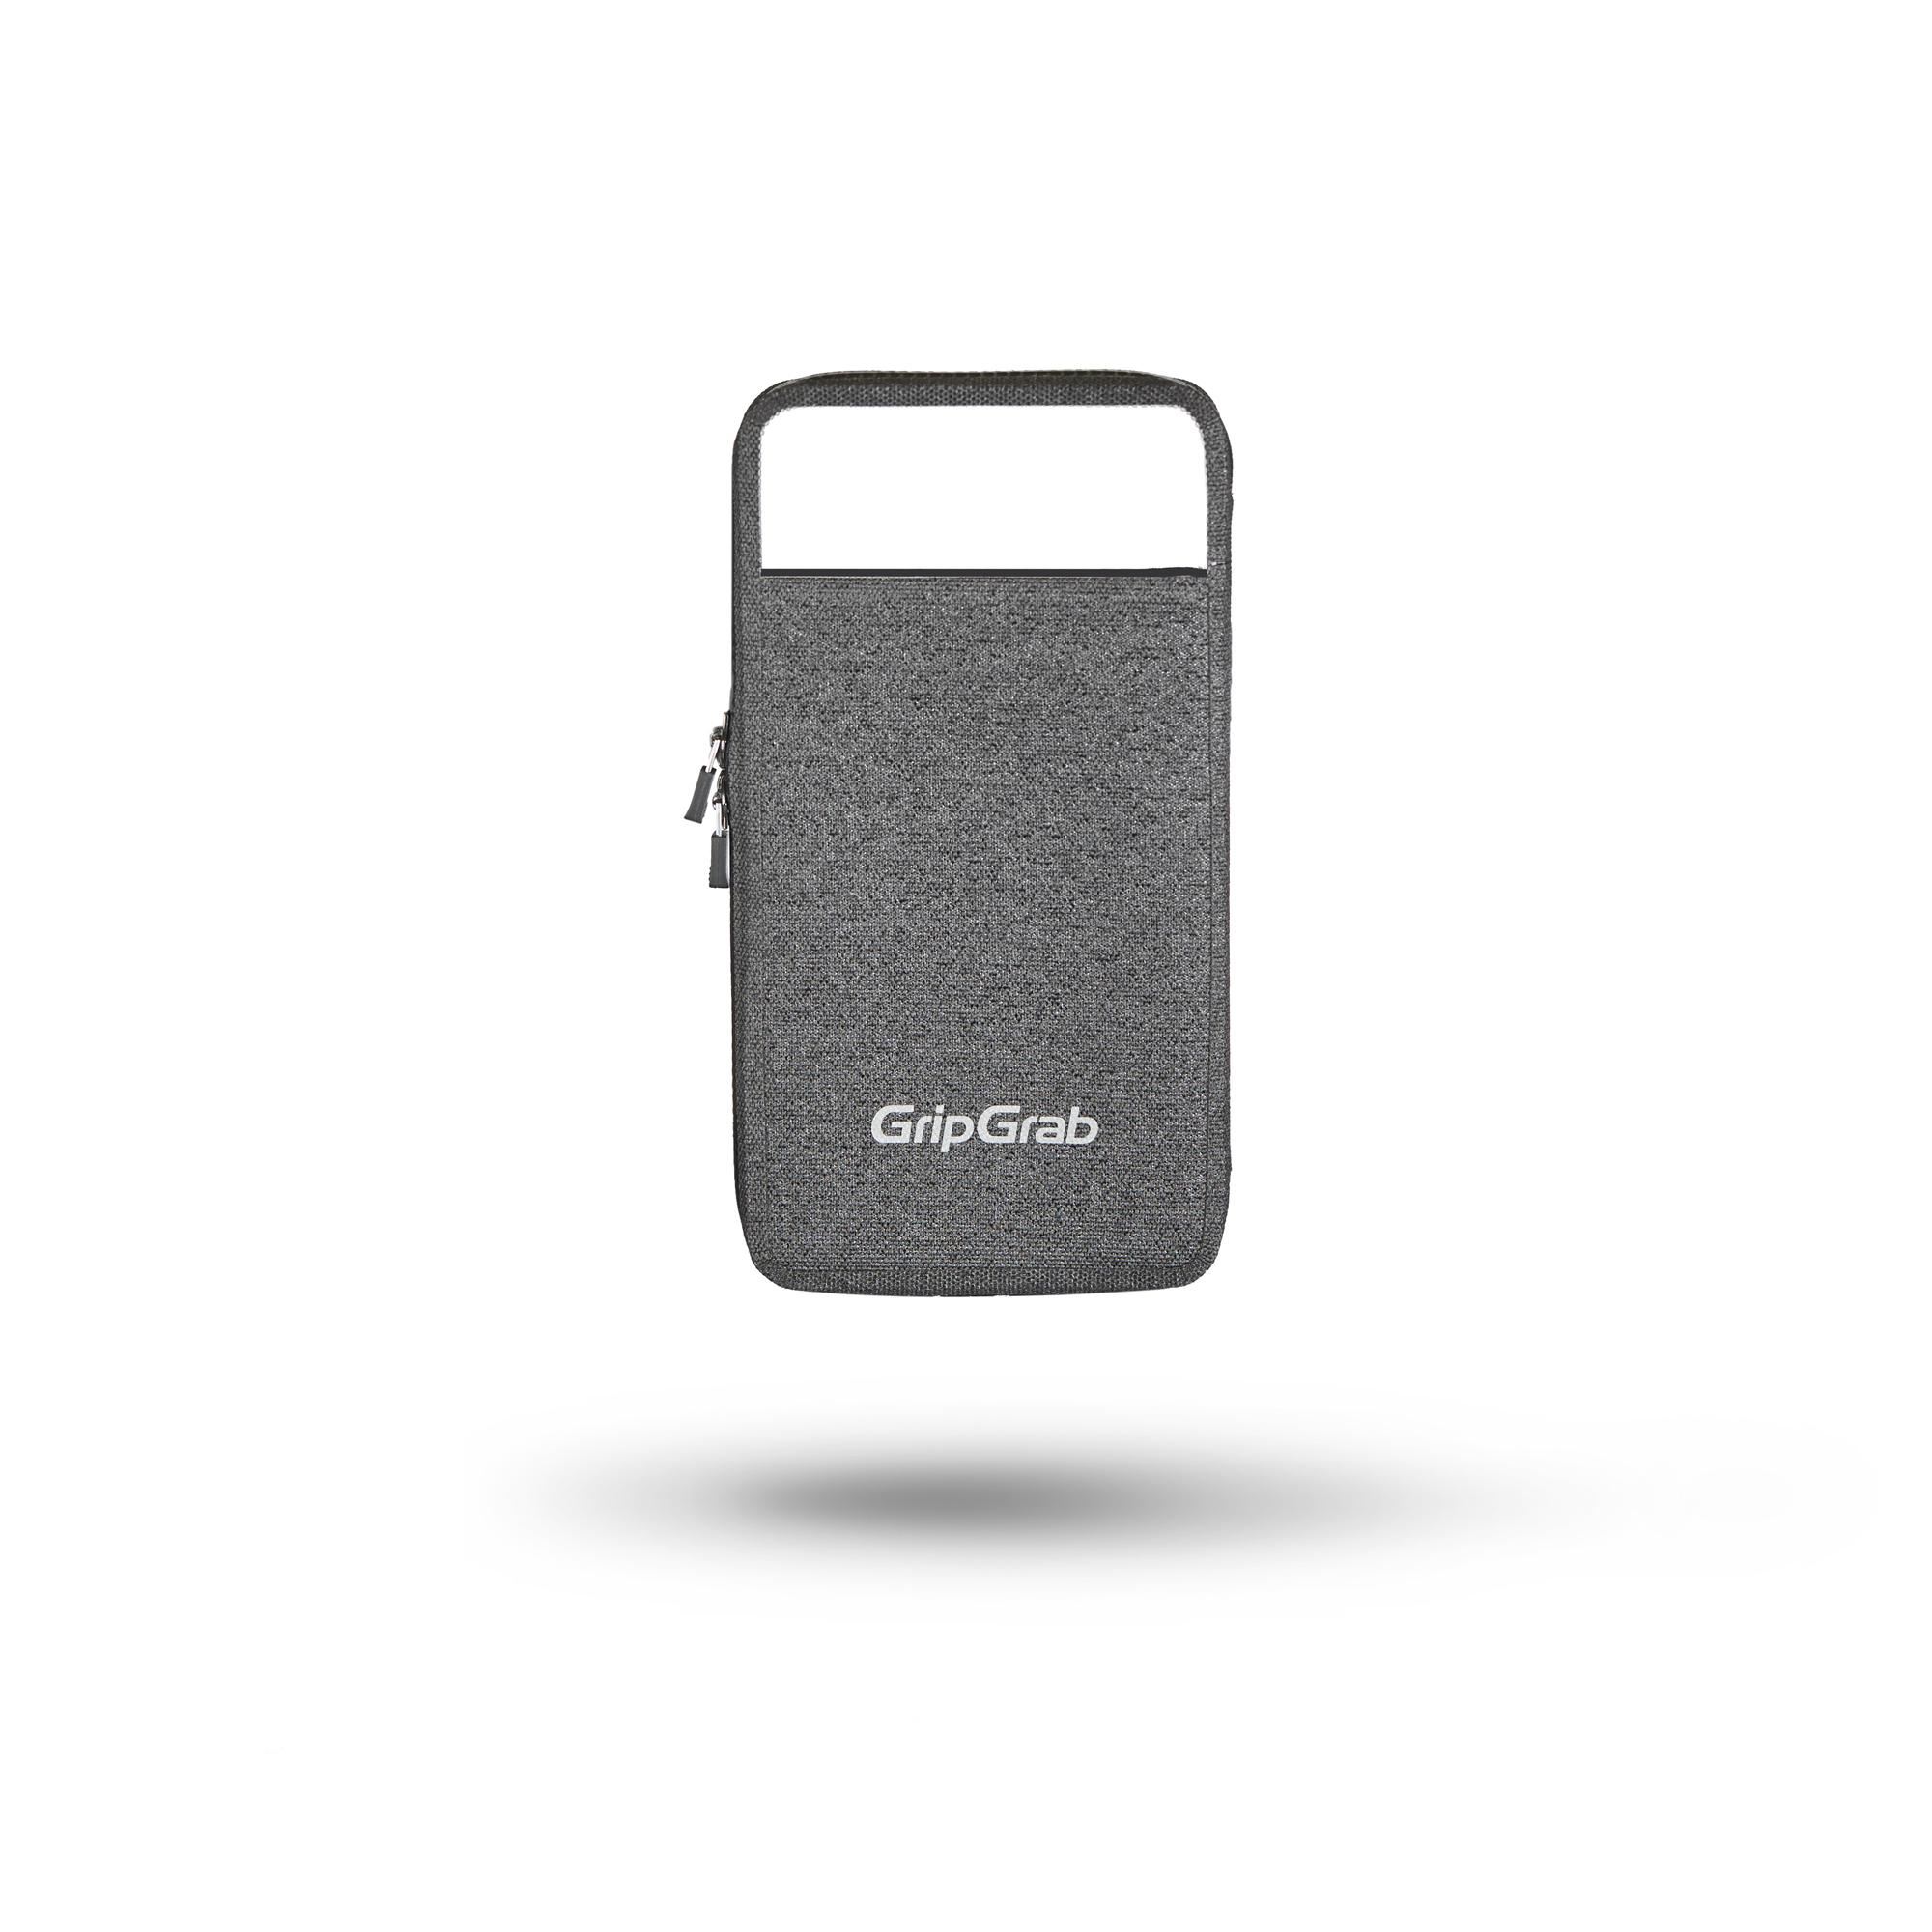 GripGrab Mobiele telefoon beschermer iPhone 6/7/8 Zwart  / Cycling Wallet for iPhone 6/7/8 Black